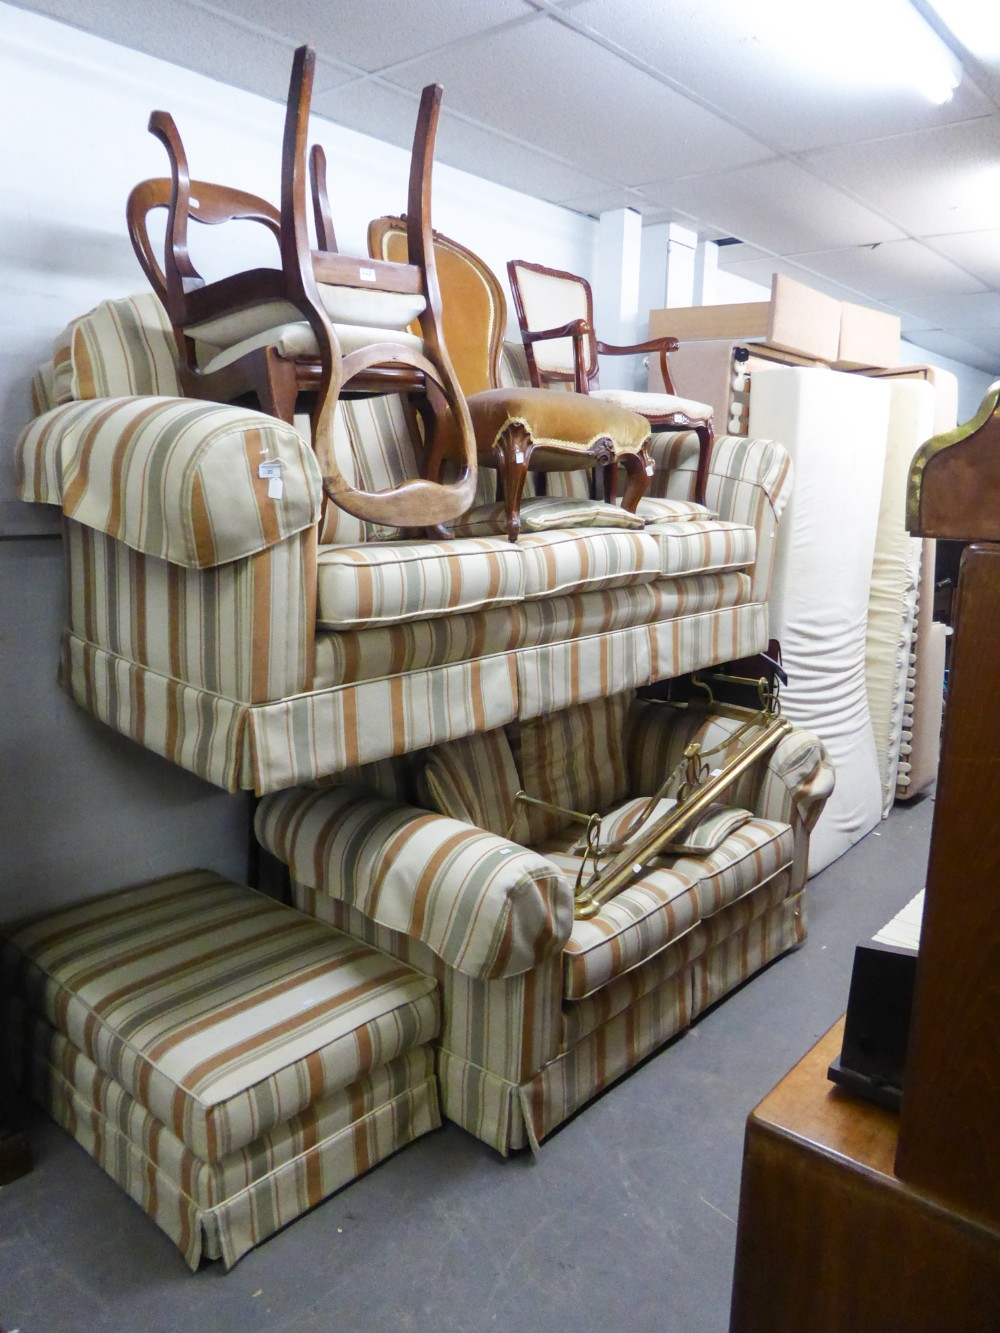 Lot 20 - PLUMBS LOUNGE SUITE OF THREE PIECES COVERED IN CREAM AND PASTEL COLOURED STIPED FABRIC, VIZ A